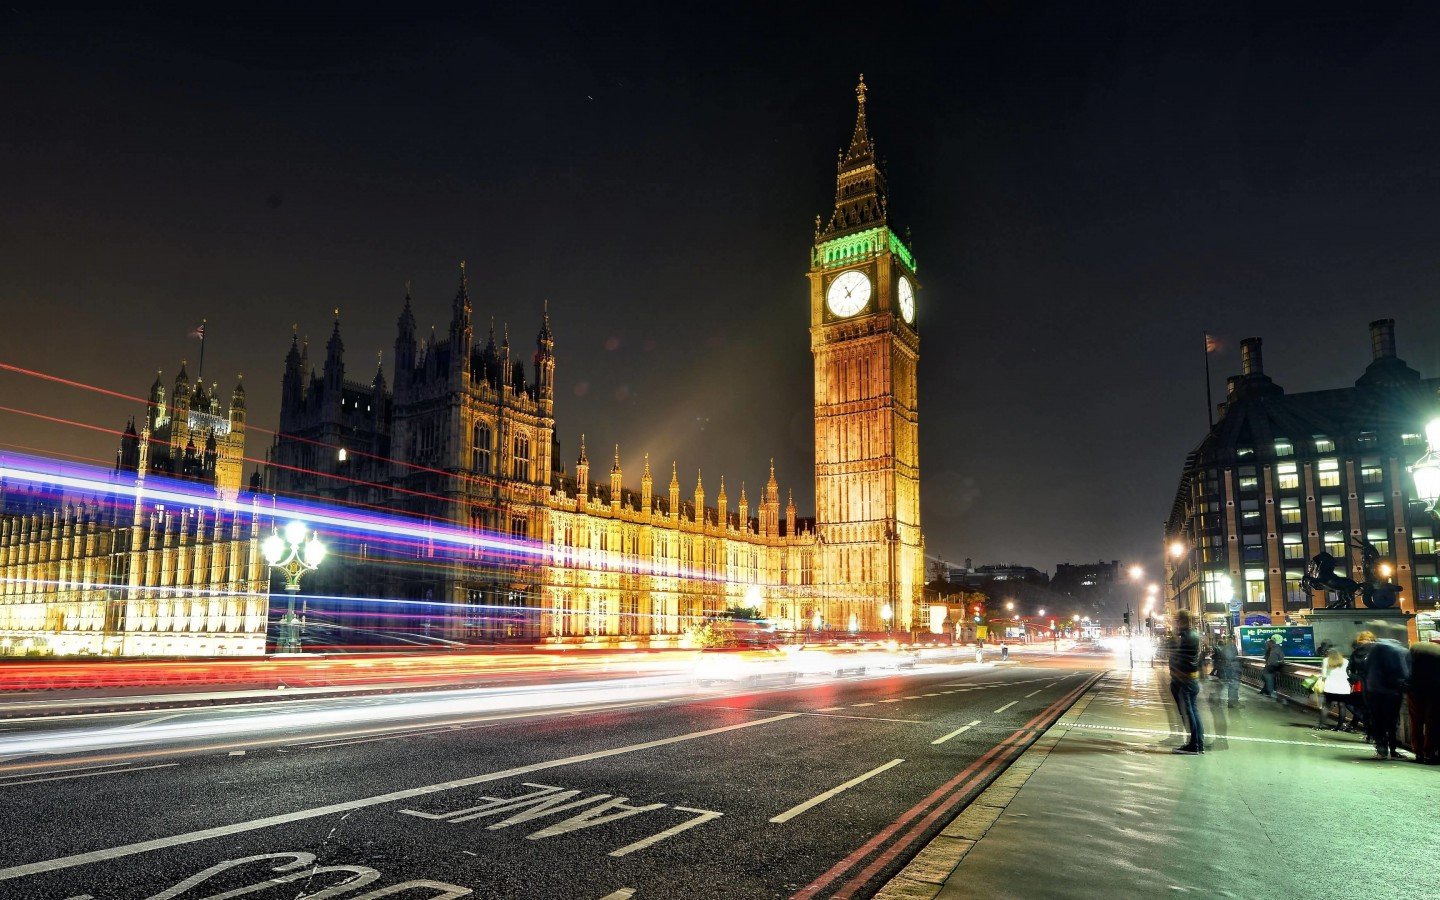 Big Ben at Night Wallpaper for Desktop 1440x900